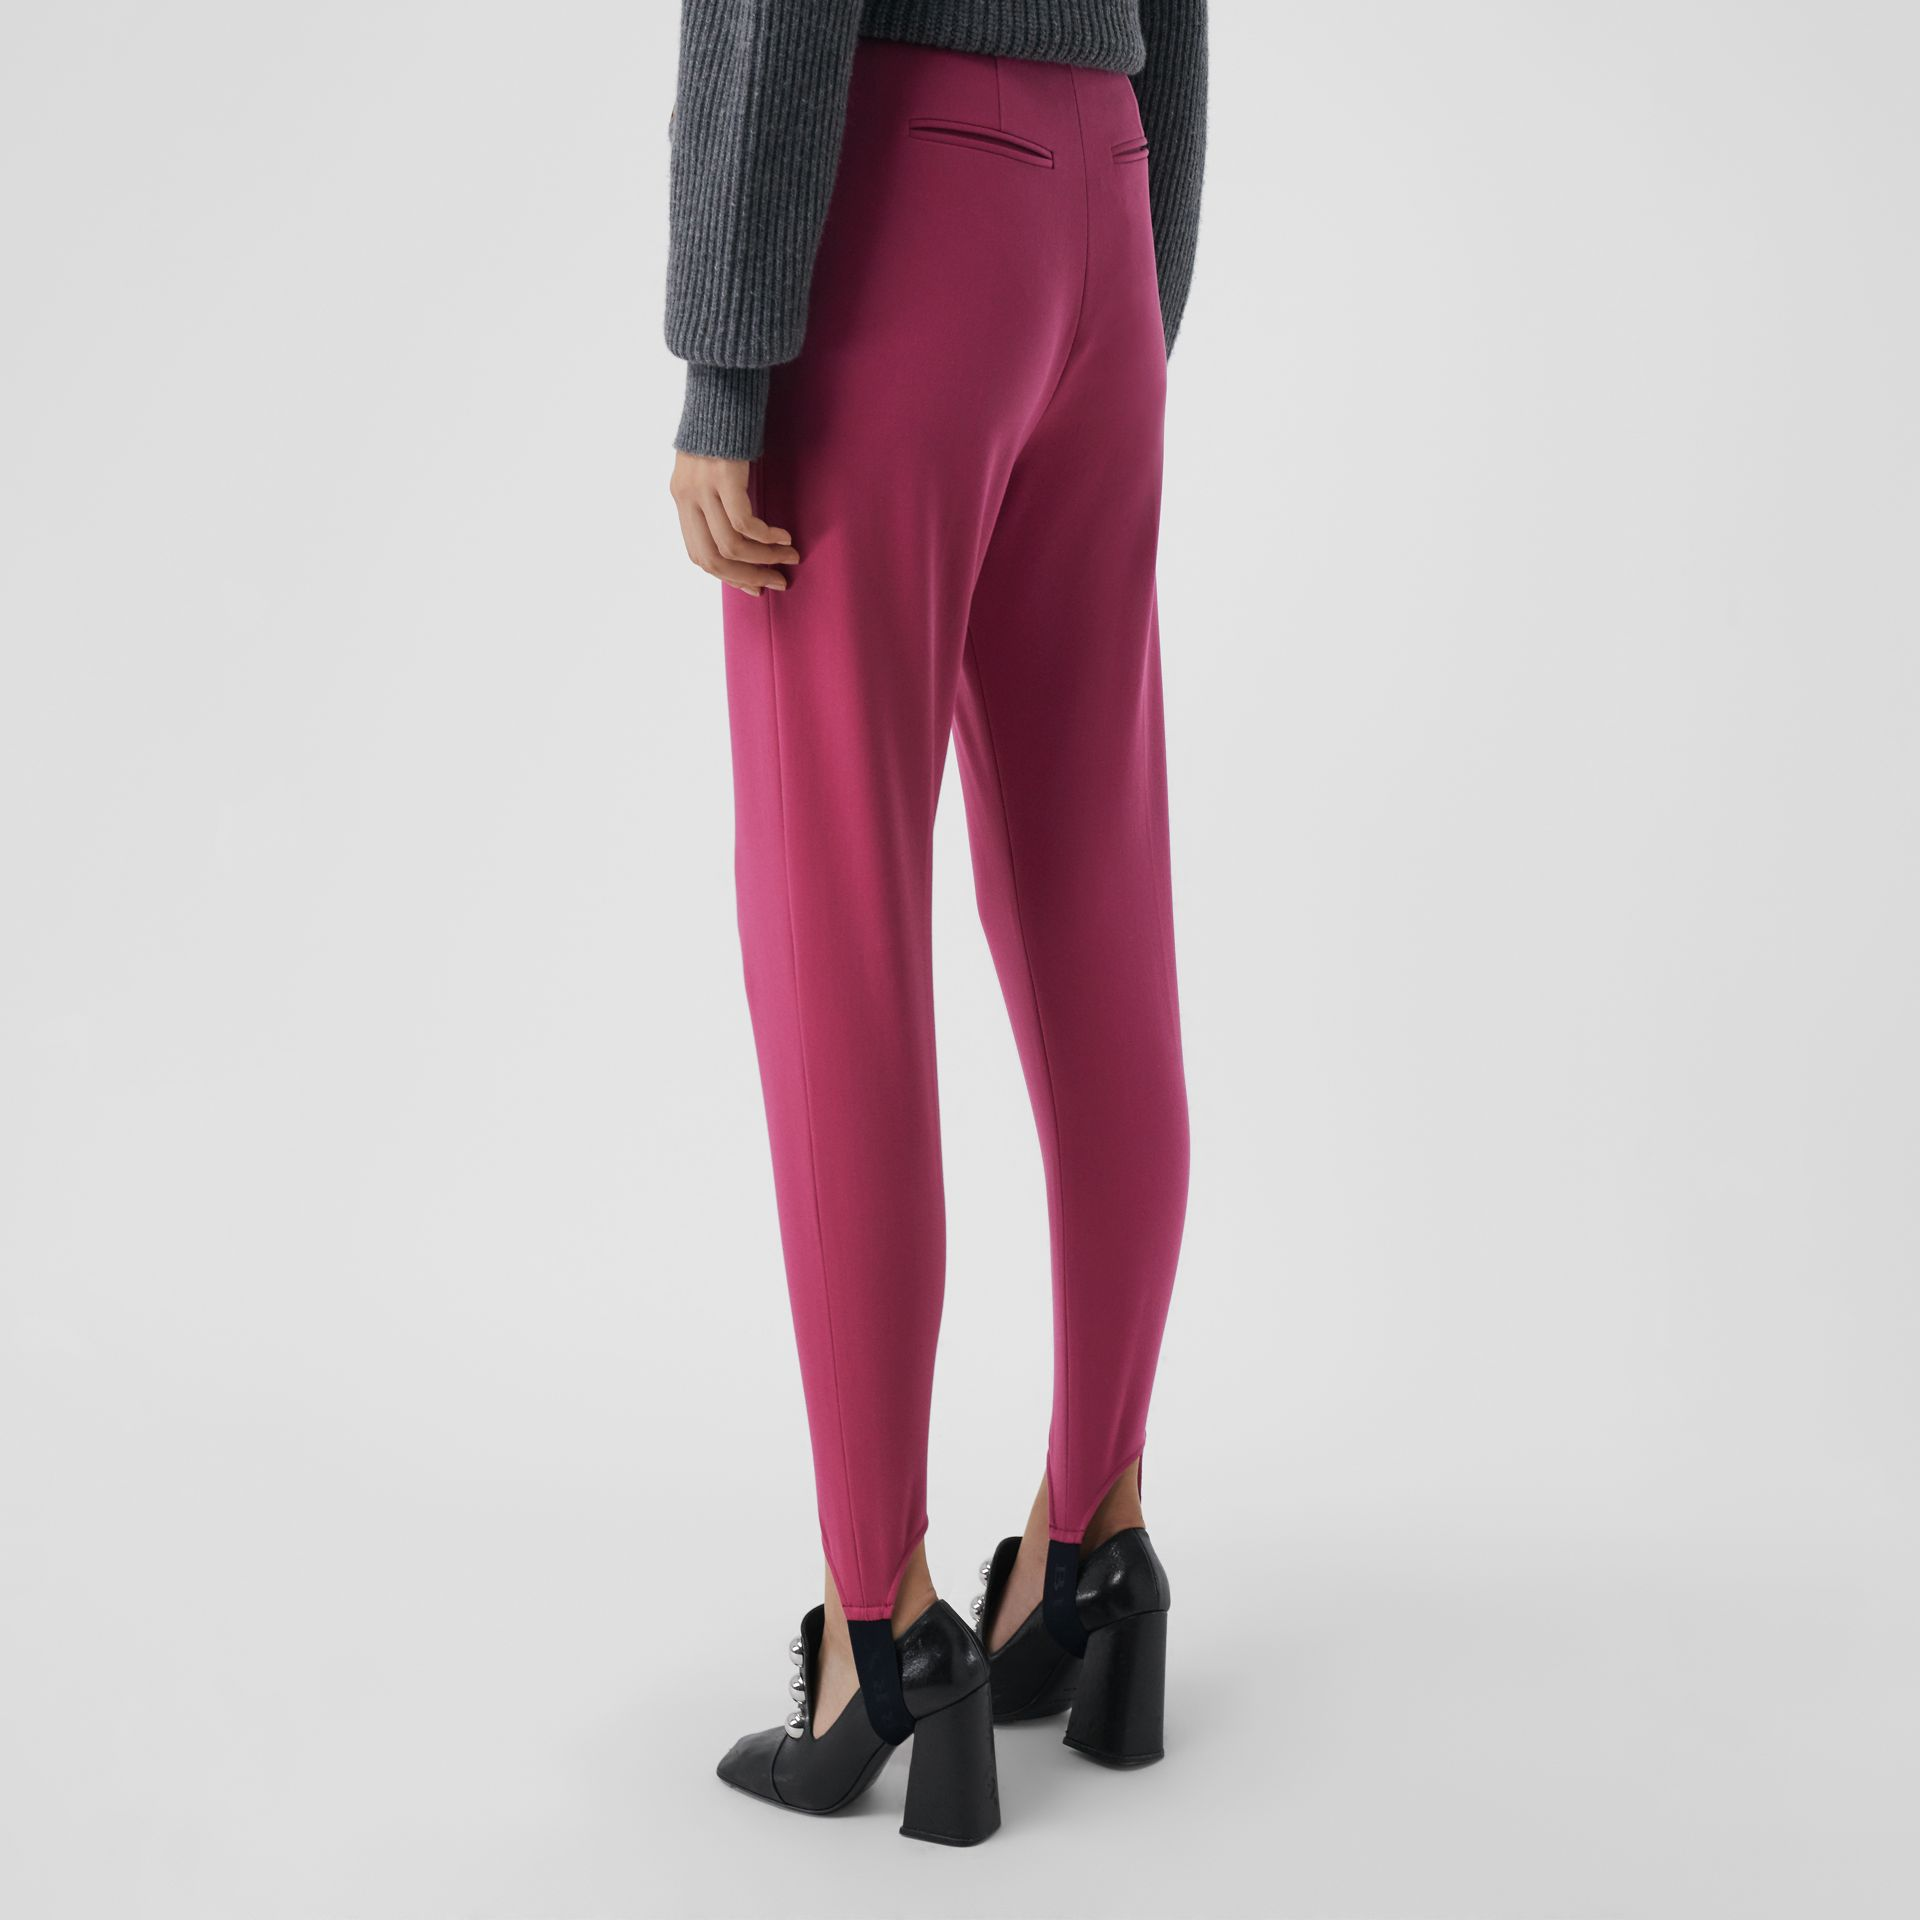 Long Cotton Blend Tailored Jodhpurs in Plum Pink - Women | Burberry - gallery image 2